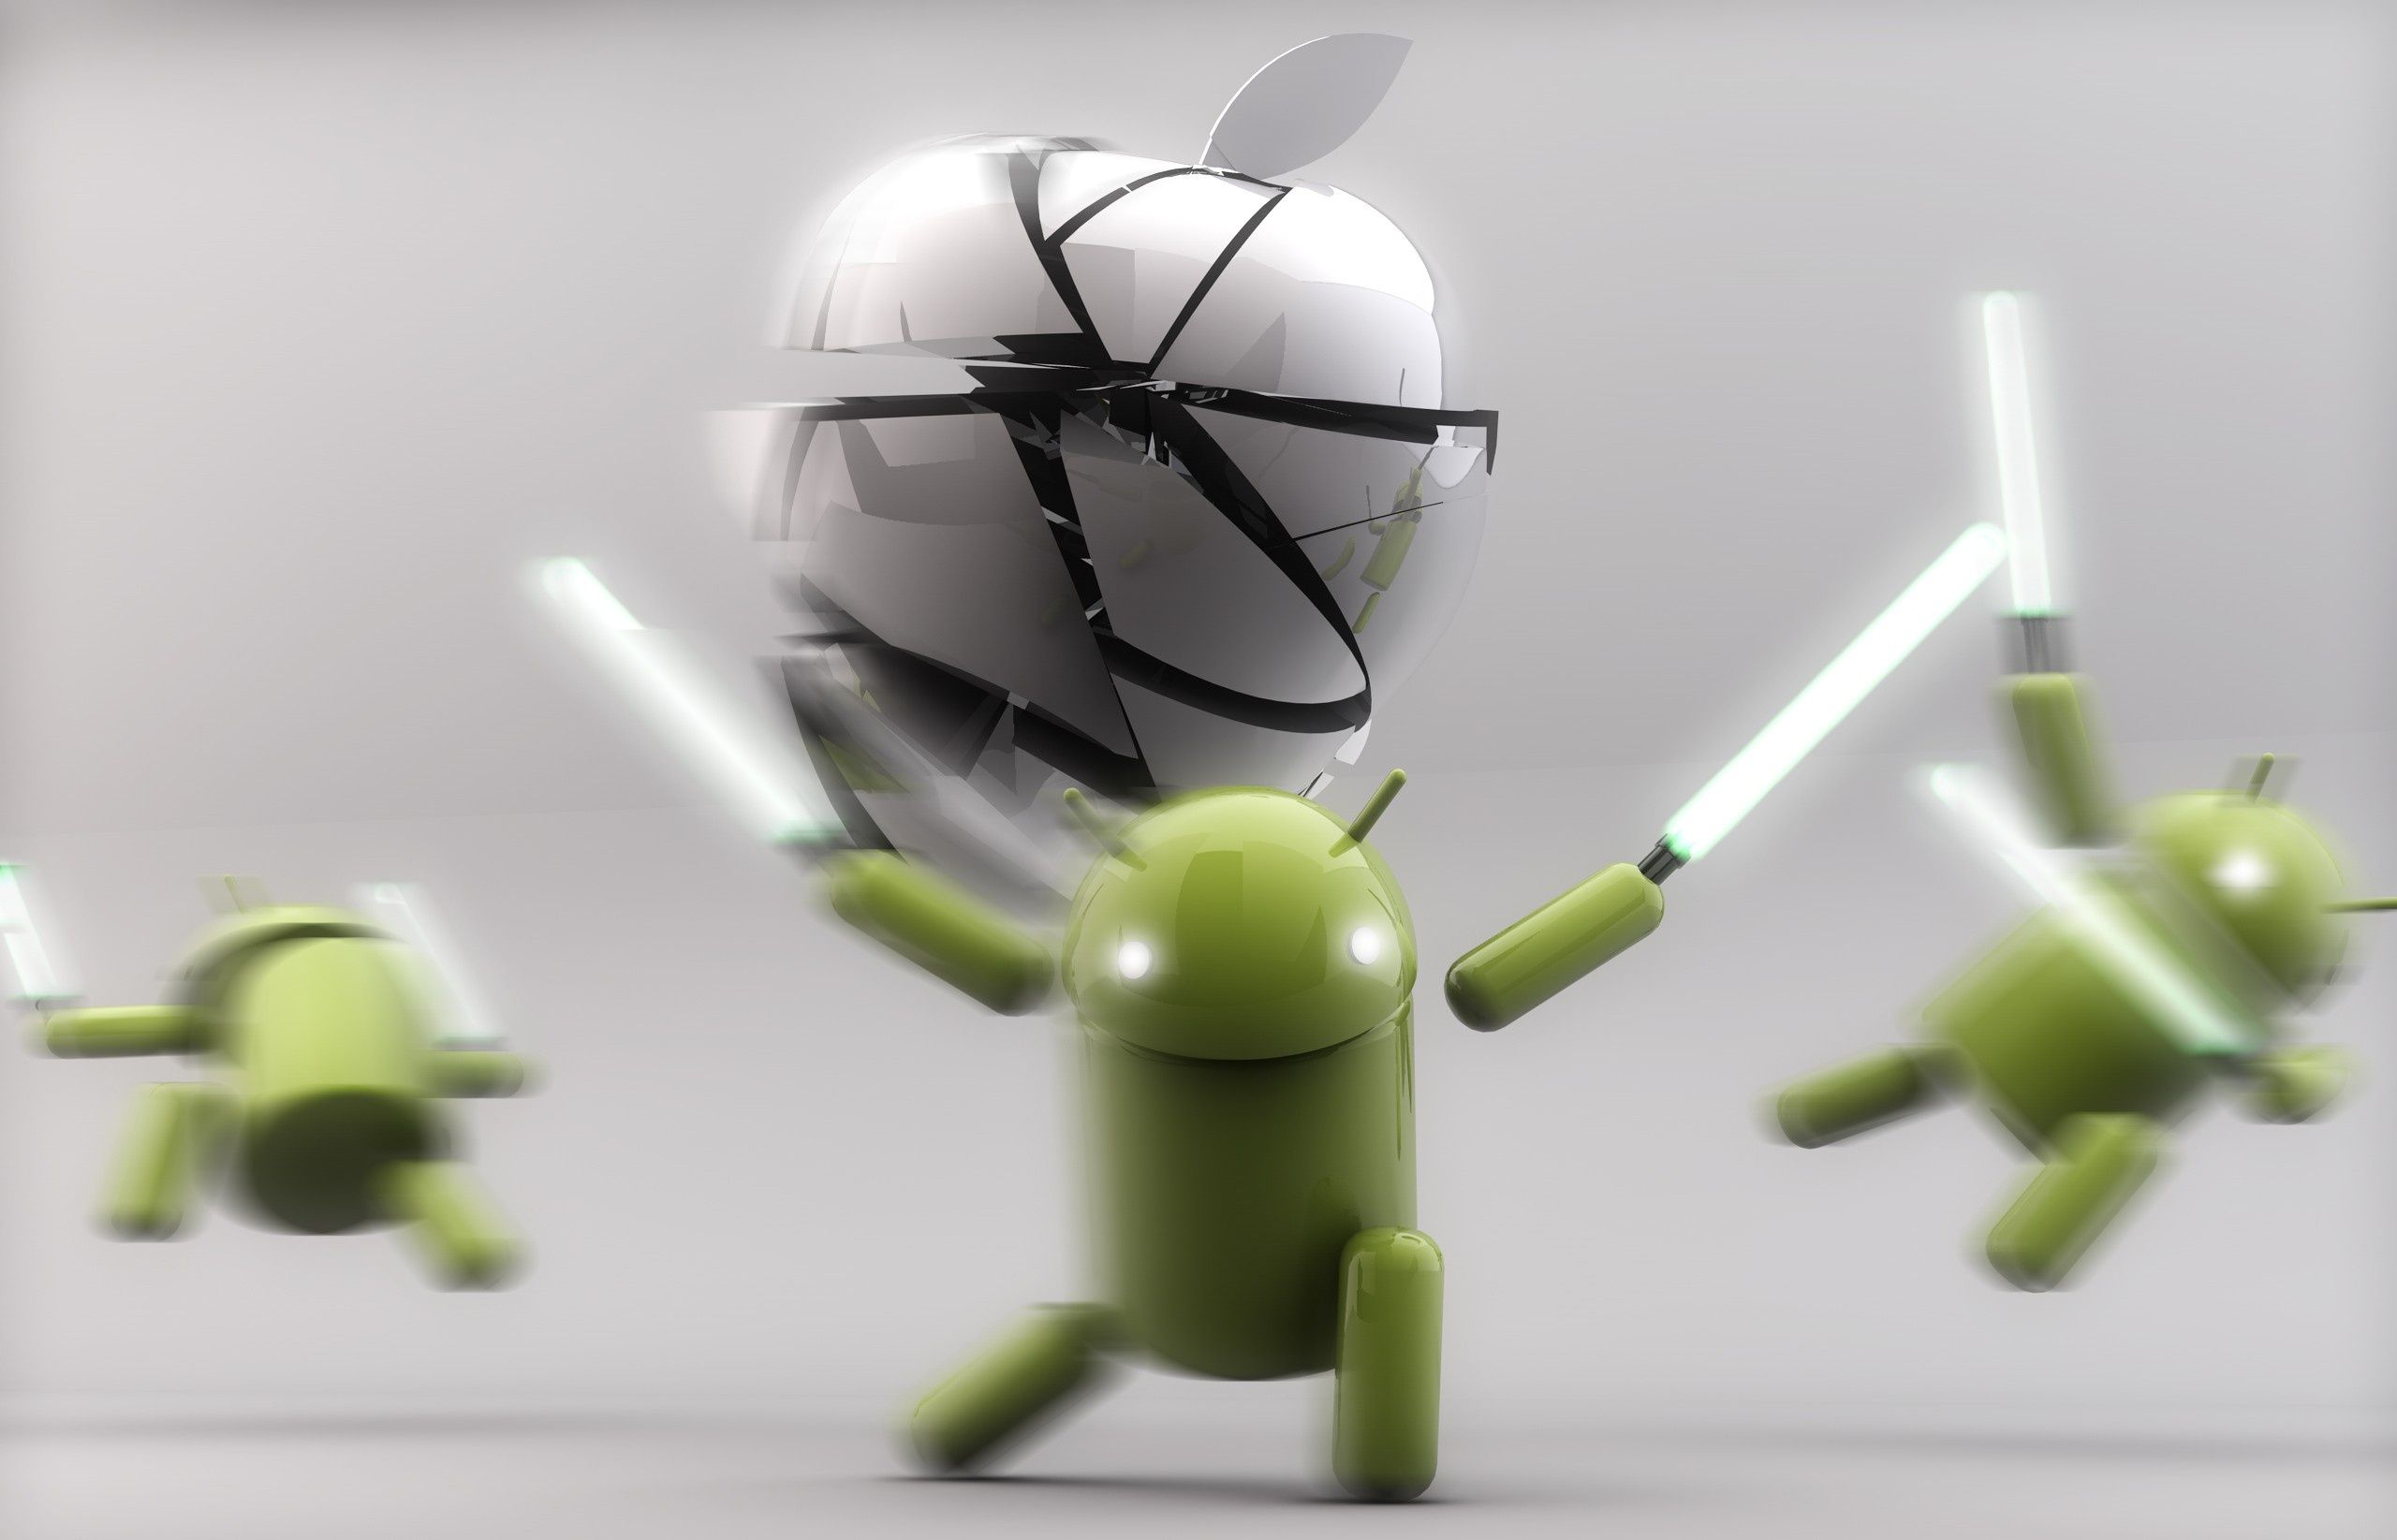 more wallpaper android jedi makes apple slices anyone for pie